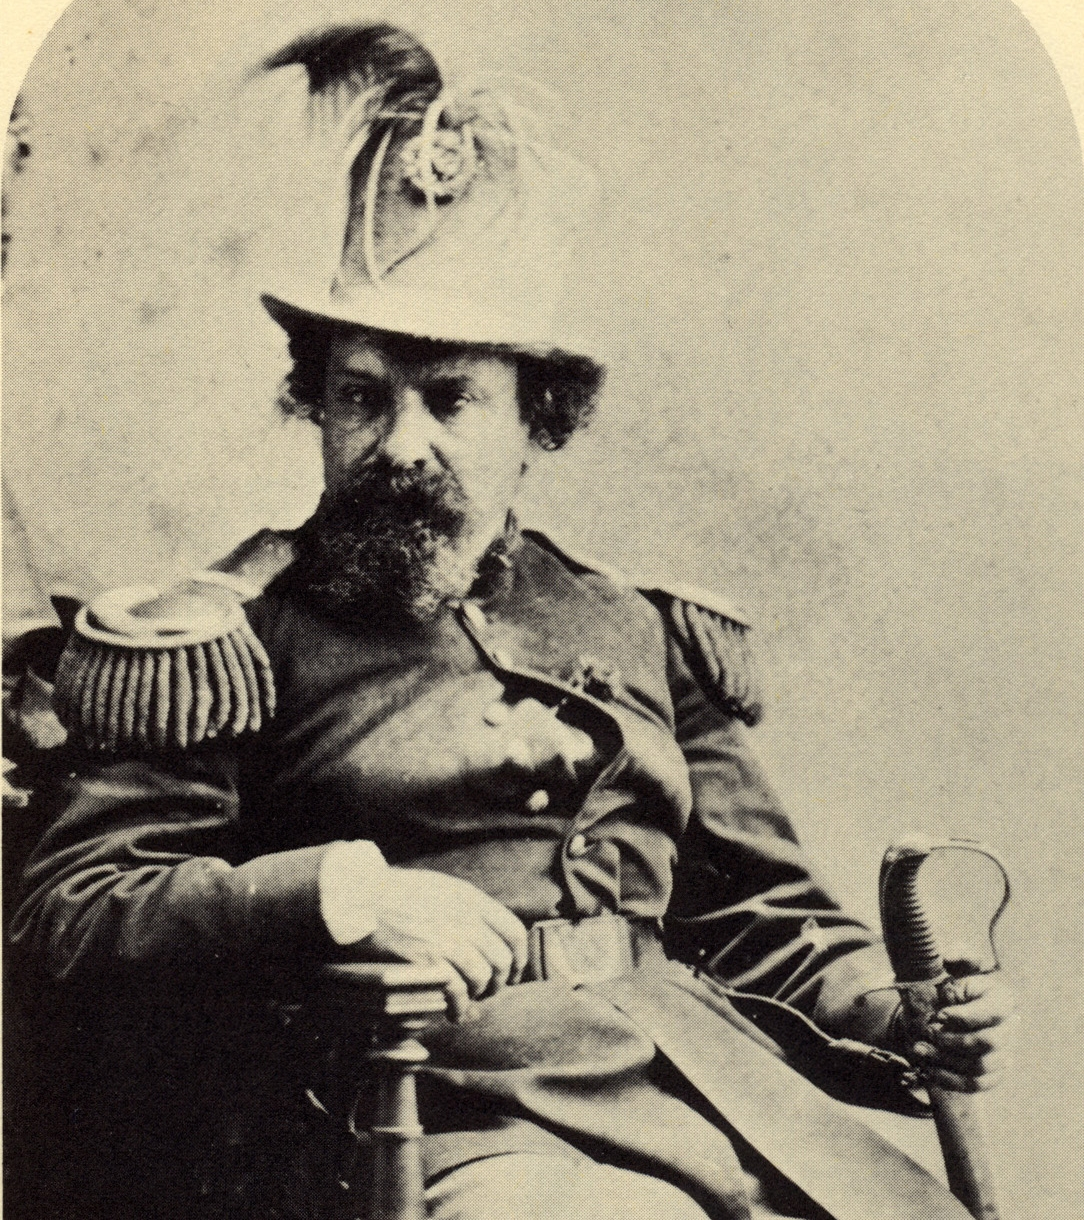 Emperor Norton, mid 1870s.  Detail from photograph by Thomas Houseworth & Co. Collection of the California Historical Society.